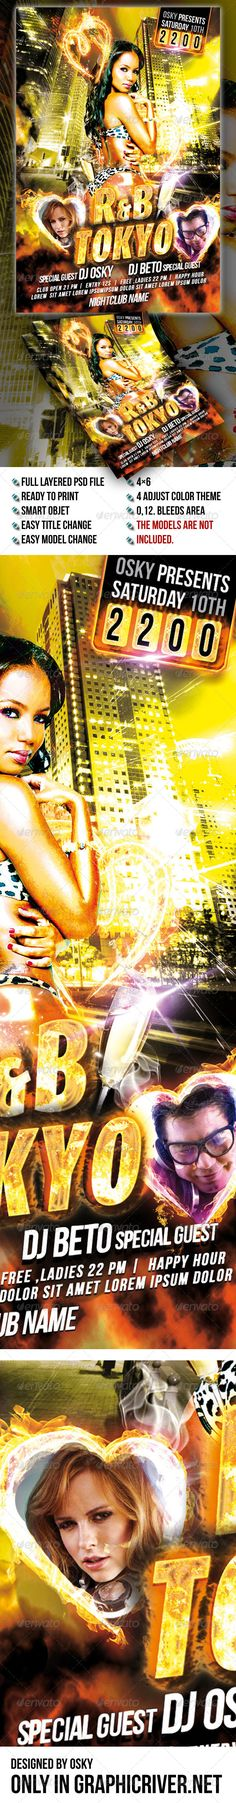 Urban Party Template ...  bright, city, club, concert, dark, disco, dj, event, friday, glow, glow and girls, gold, hip hip, hiphop, light, lights, modern, neon, new, night, party, r&b, rap, red, saturday, sexy, shine, up, urban